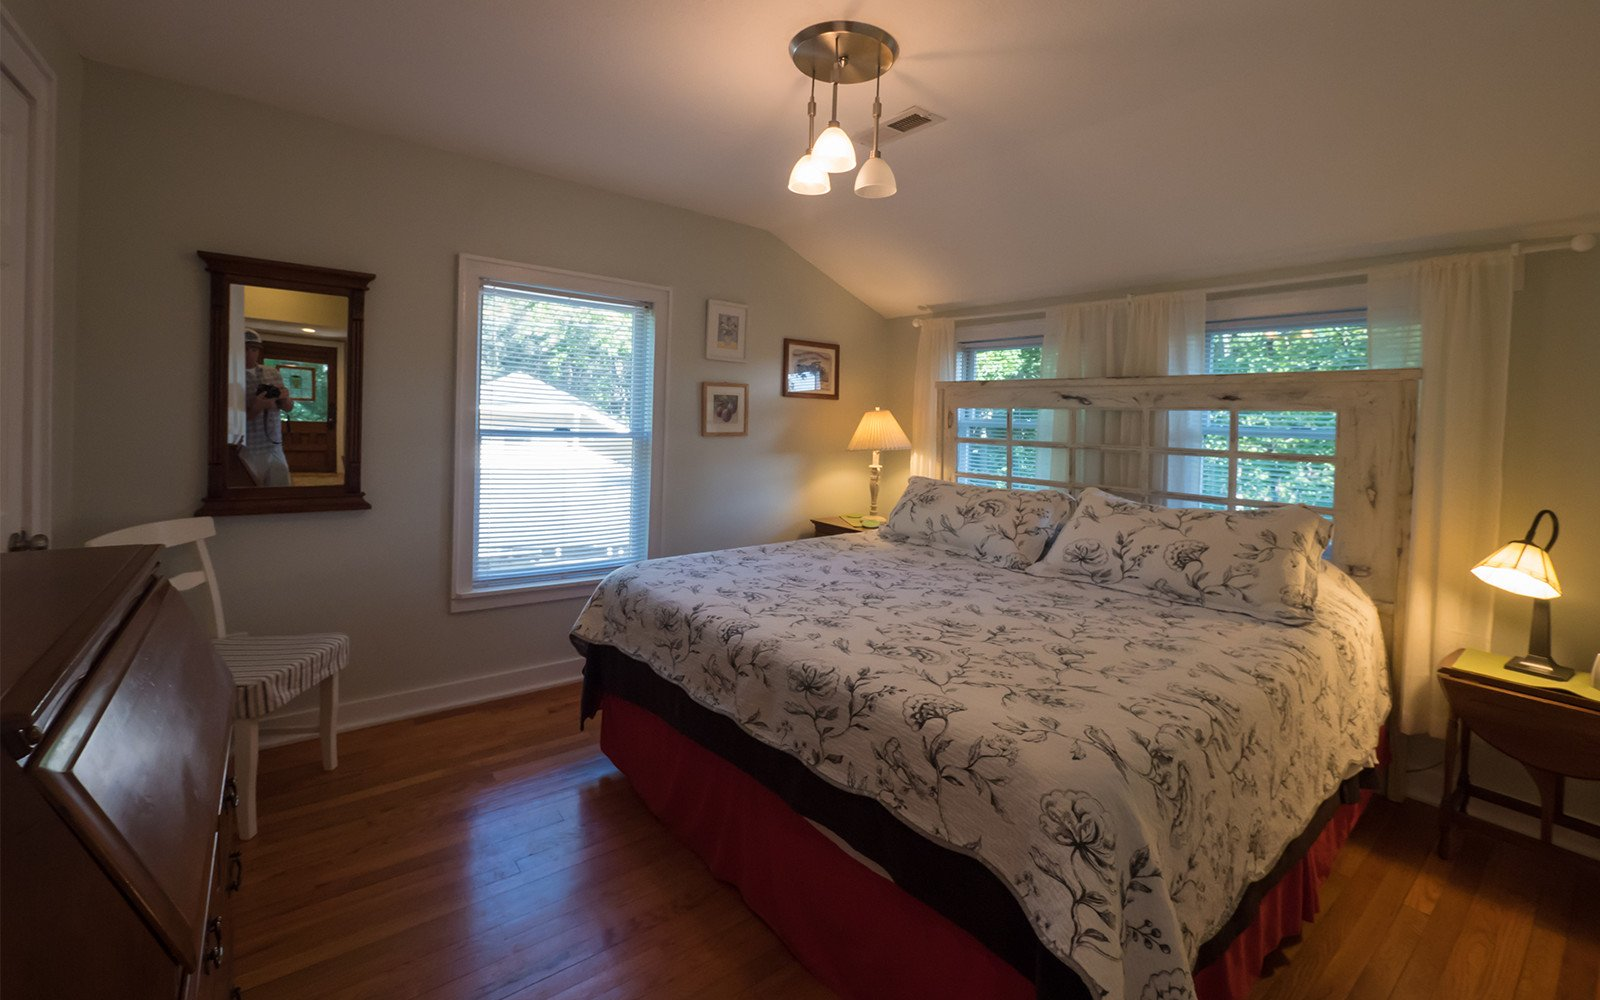 Bungalow-King-bedroom-on-main-level